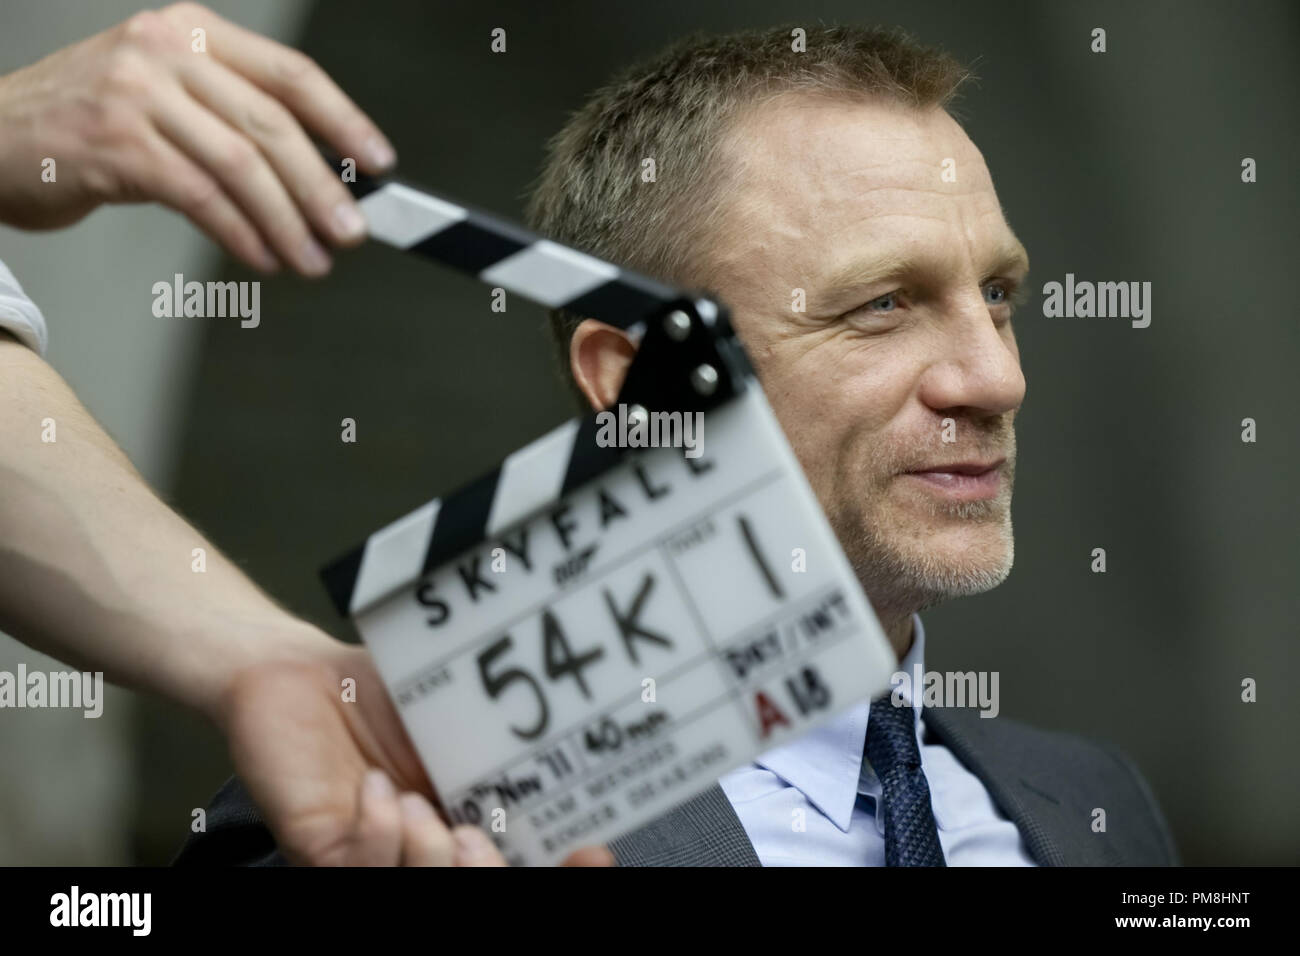 Daniel Craig stars as James Bond on the set of Metro-Goldwyn-Mayer Pictures/Columbia Pictures/EON Productions action adventure SKYFALL. - Stock Image